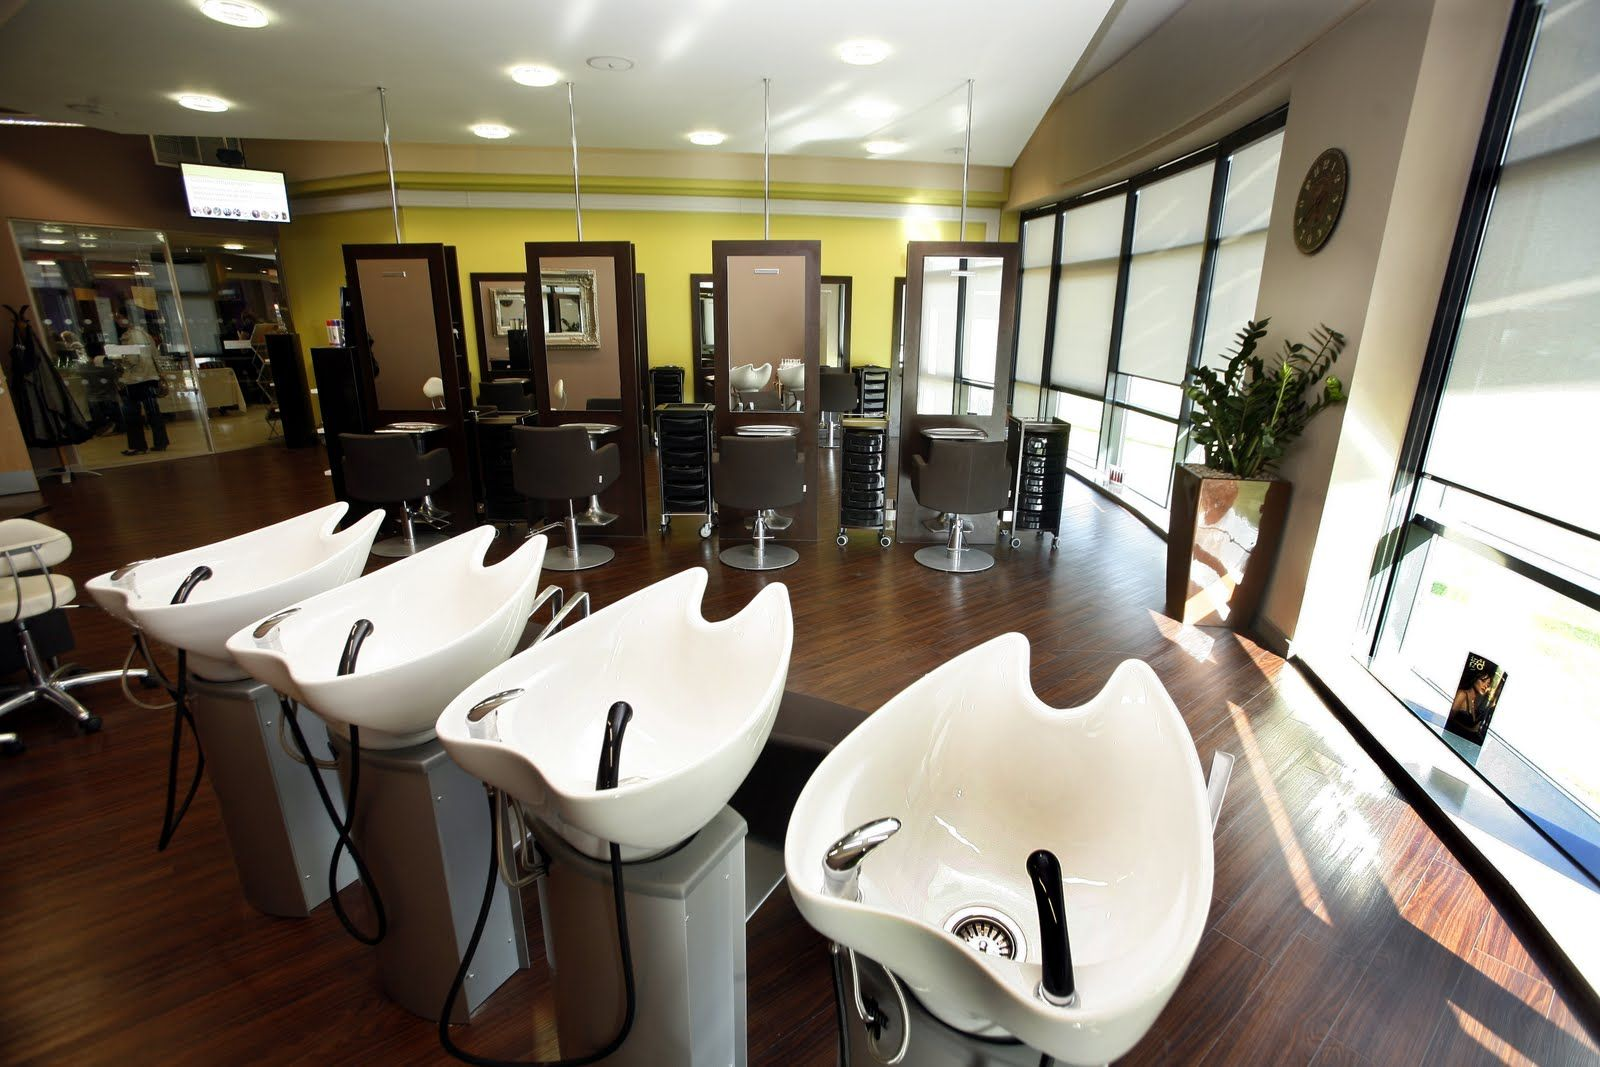 Beauty Salon Design Ideas interior design ideas chairs beauty salon mirrors salo de beleza pinterest search design and beauty salons Beauty Salon Decorating Ideas Photos February 5 2013 Outdoor Decor No Comments Advertisement